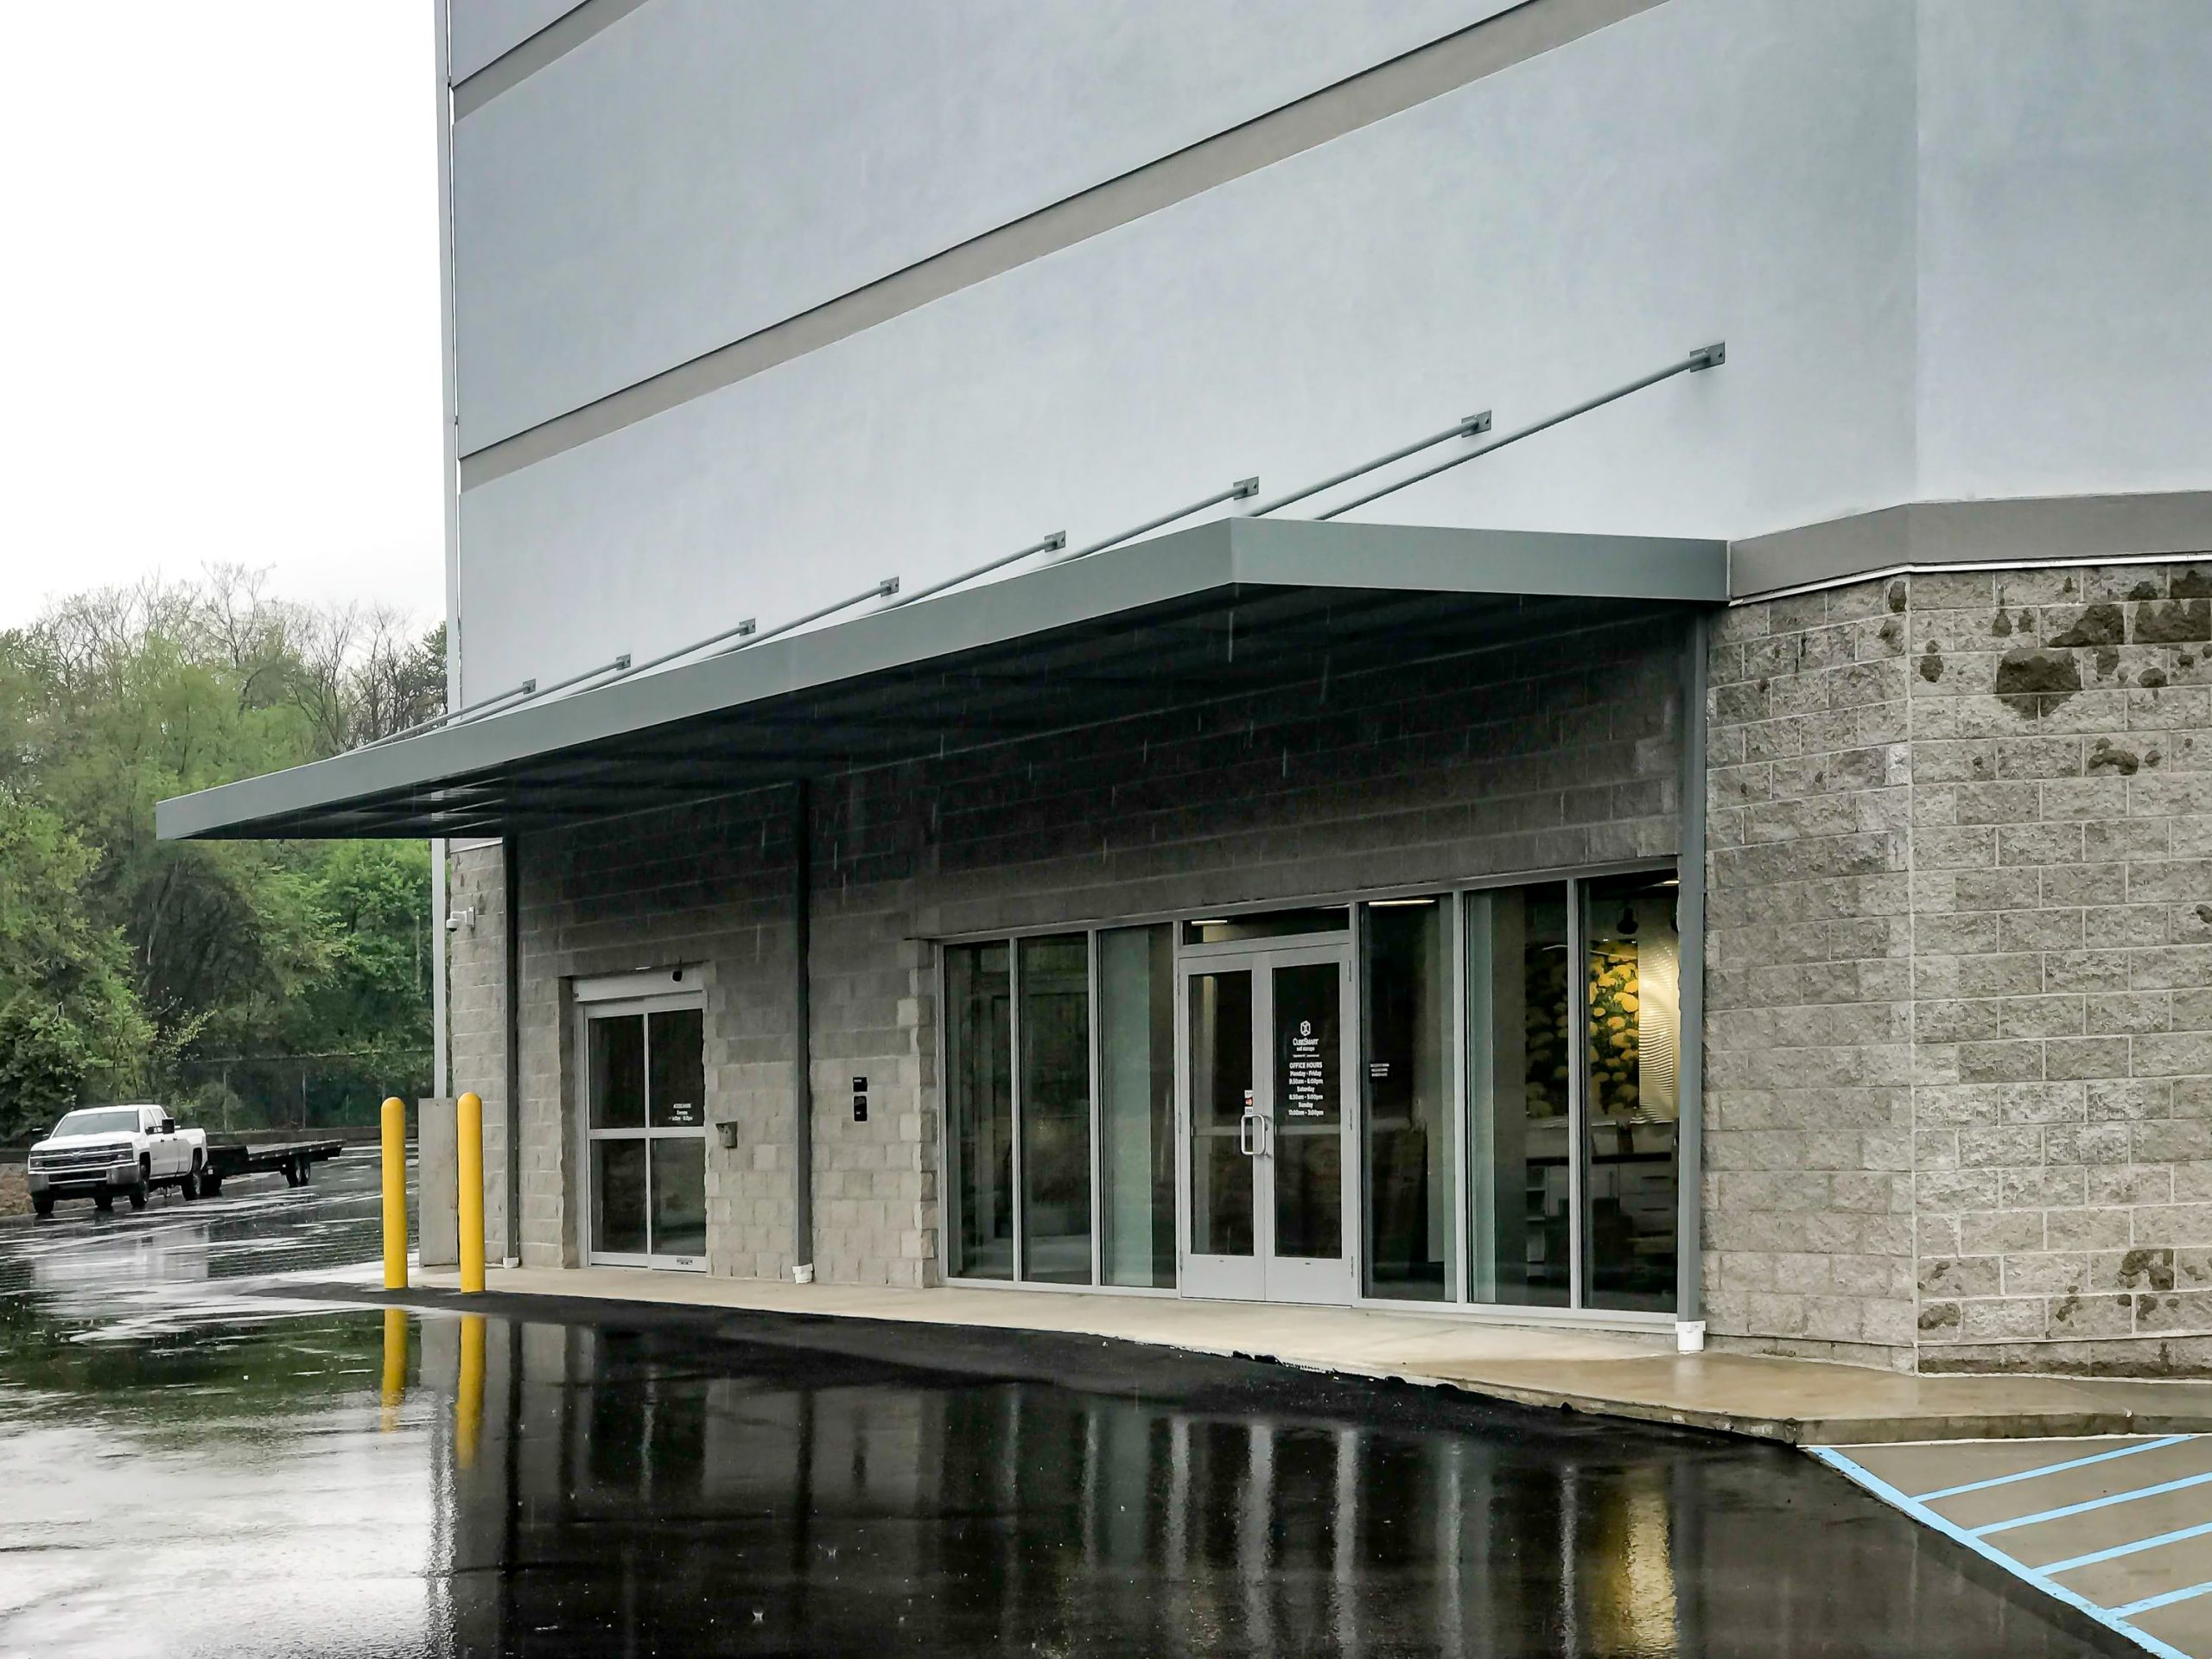 Awnex Featured Project - Hanger Rod Gutter Architectural Canopies - CubeSmart - Pittsburgh, Pennsylvania.